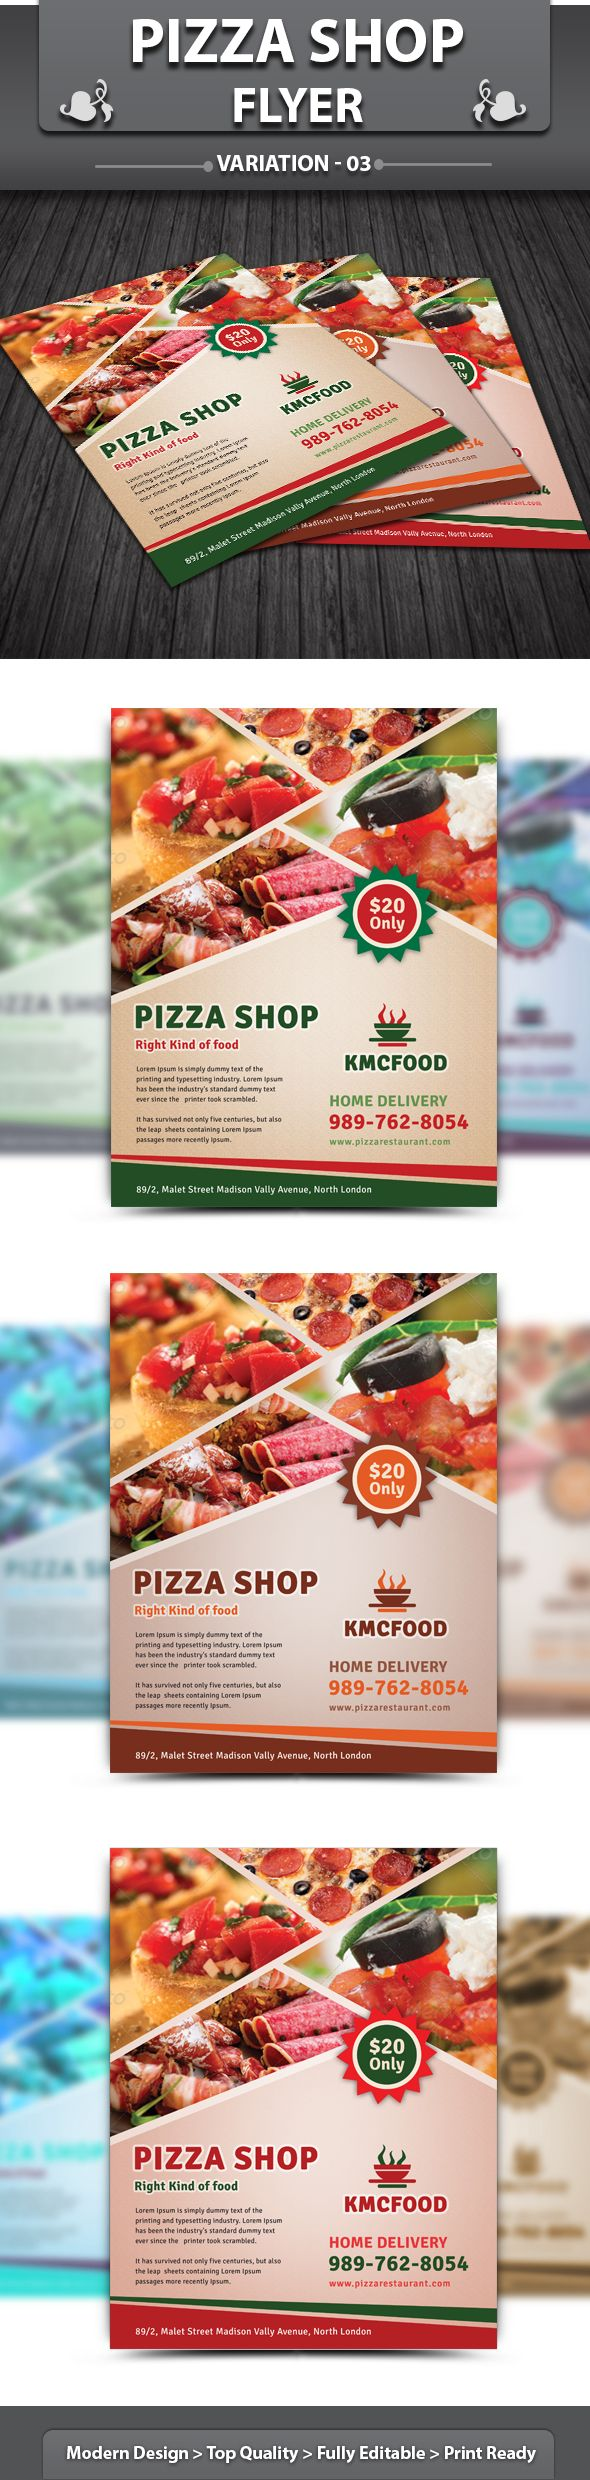 Download this file at... http://graphicriver.net/item/pizza-shop-flyer/4685986?ref=dotnpix